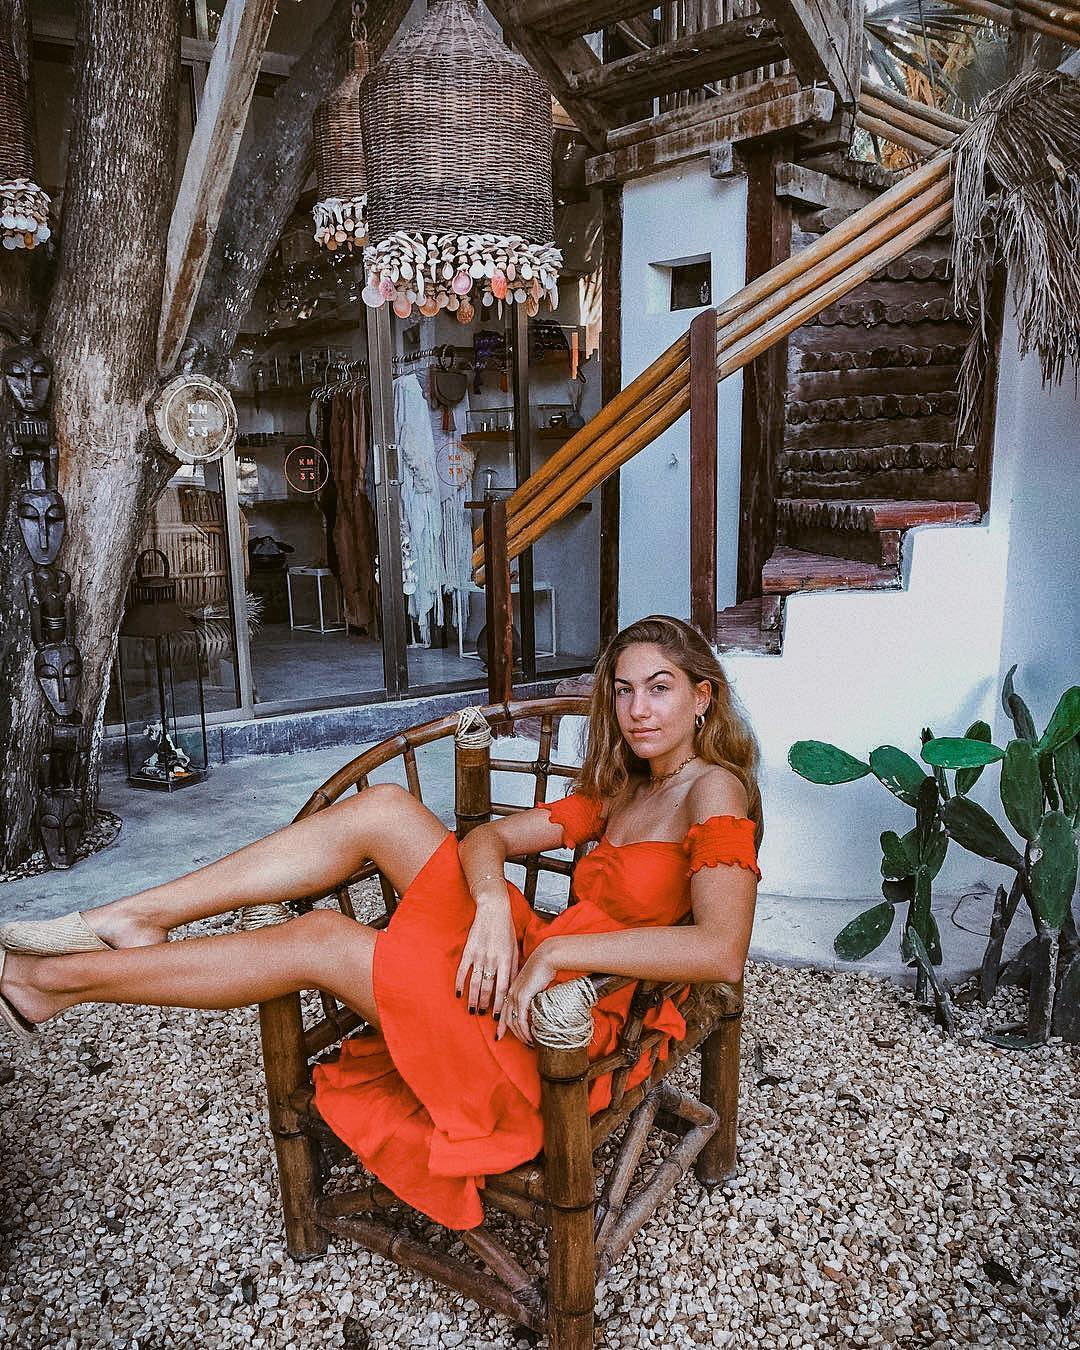 Orange Strapless Sundress For Summer Vacation 2019